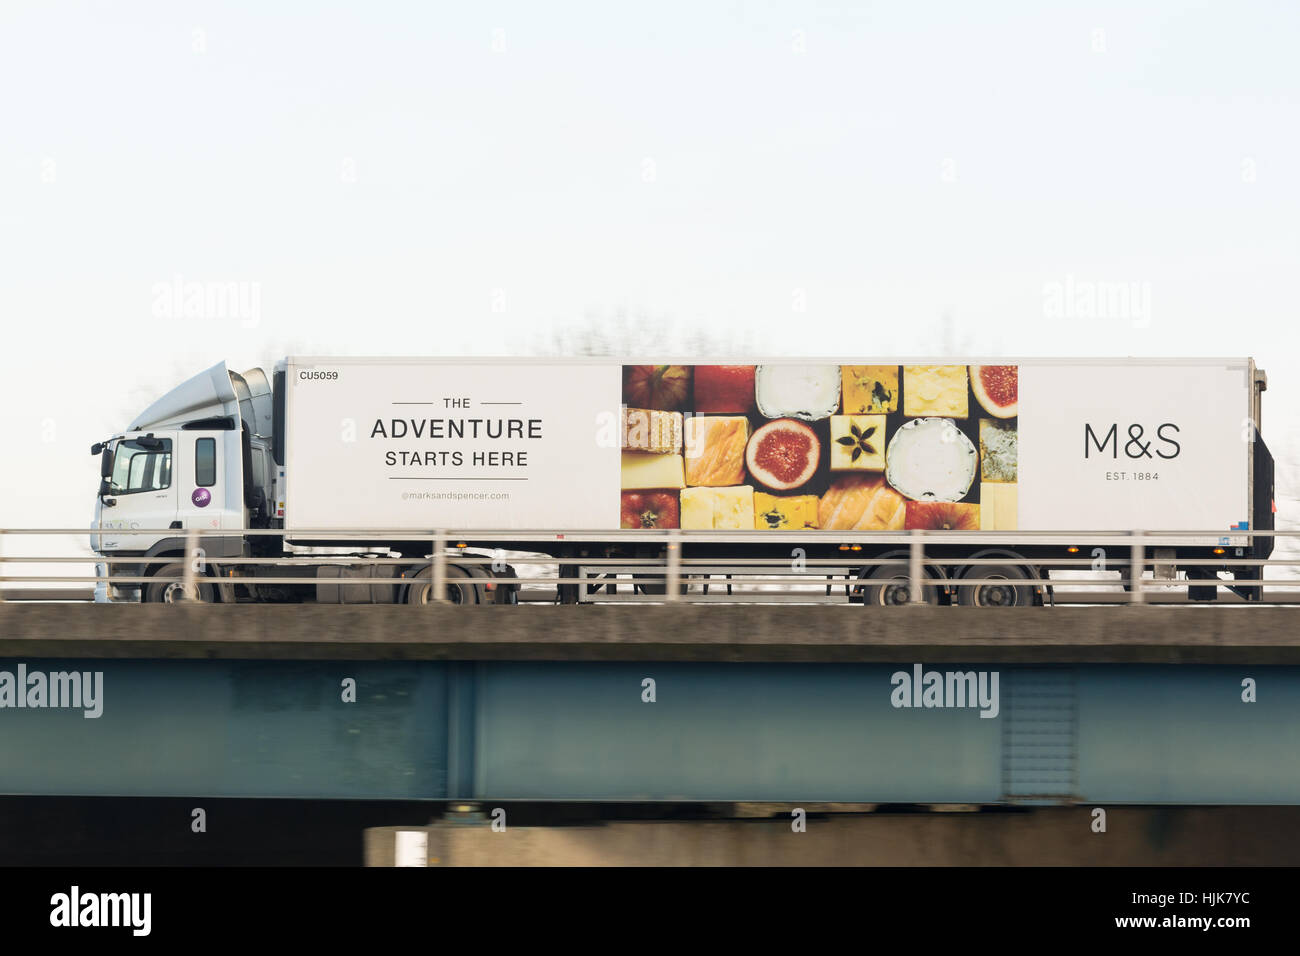 M&S Marks and Spencer distribution lorry in Scotland, UK - Stock Image